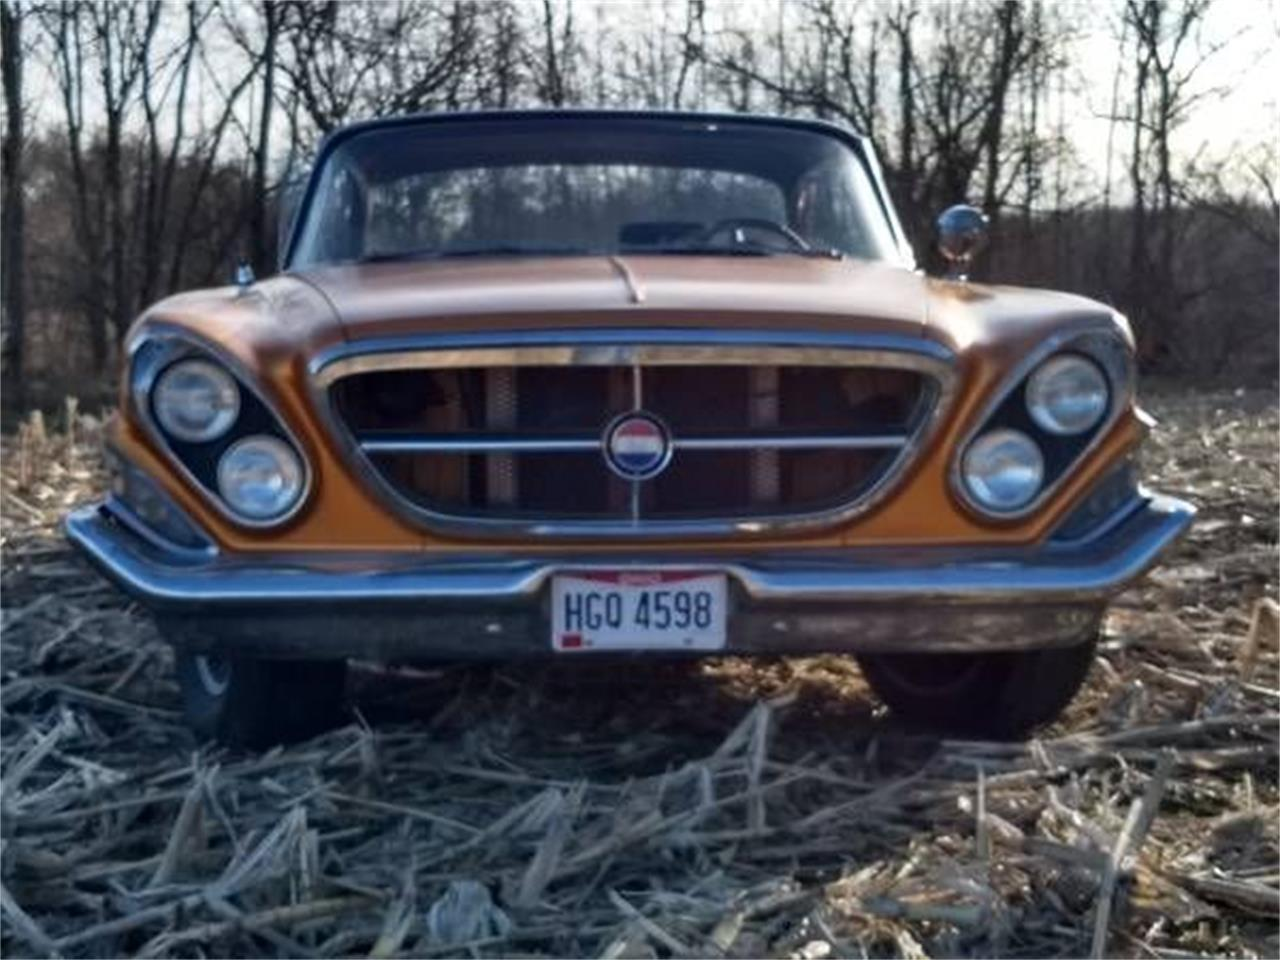 1962 Chrysler 300 for sale in Cadillac, MI – photo 11